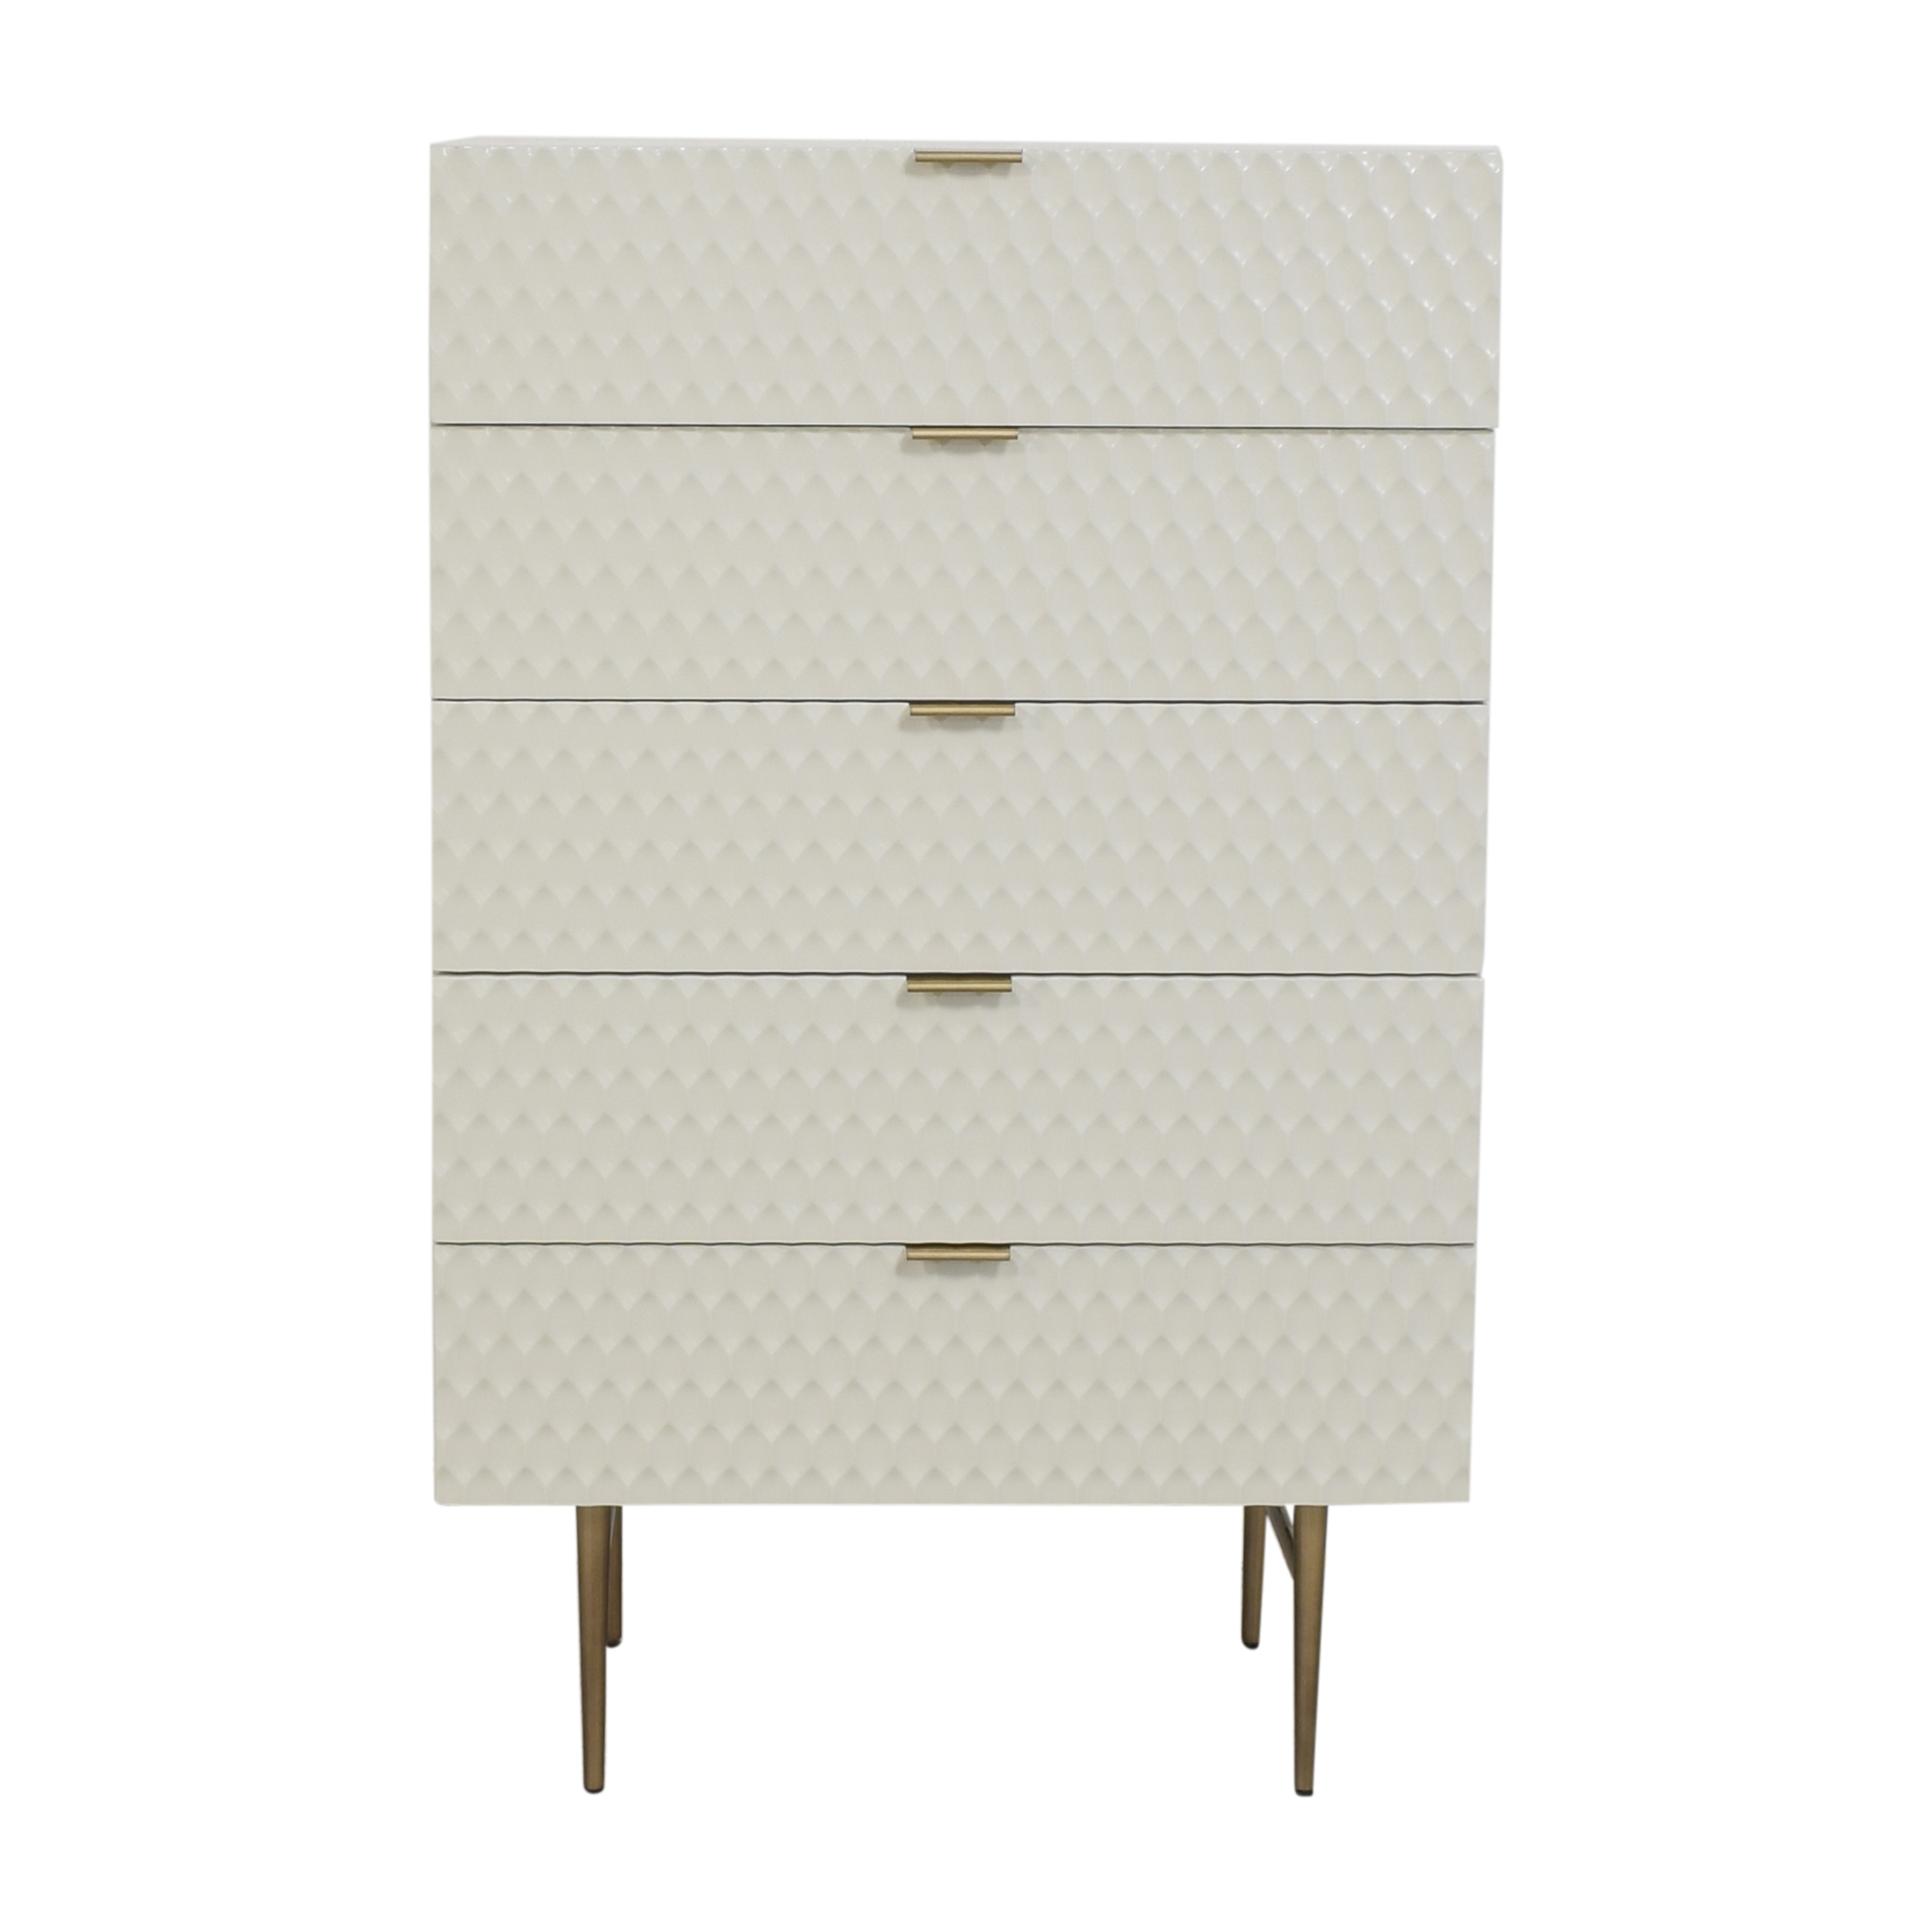 West Elm West Elm Audrey 5-Drawer Dresser dimensions